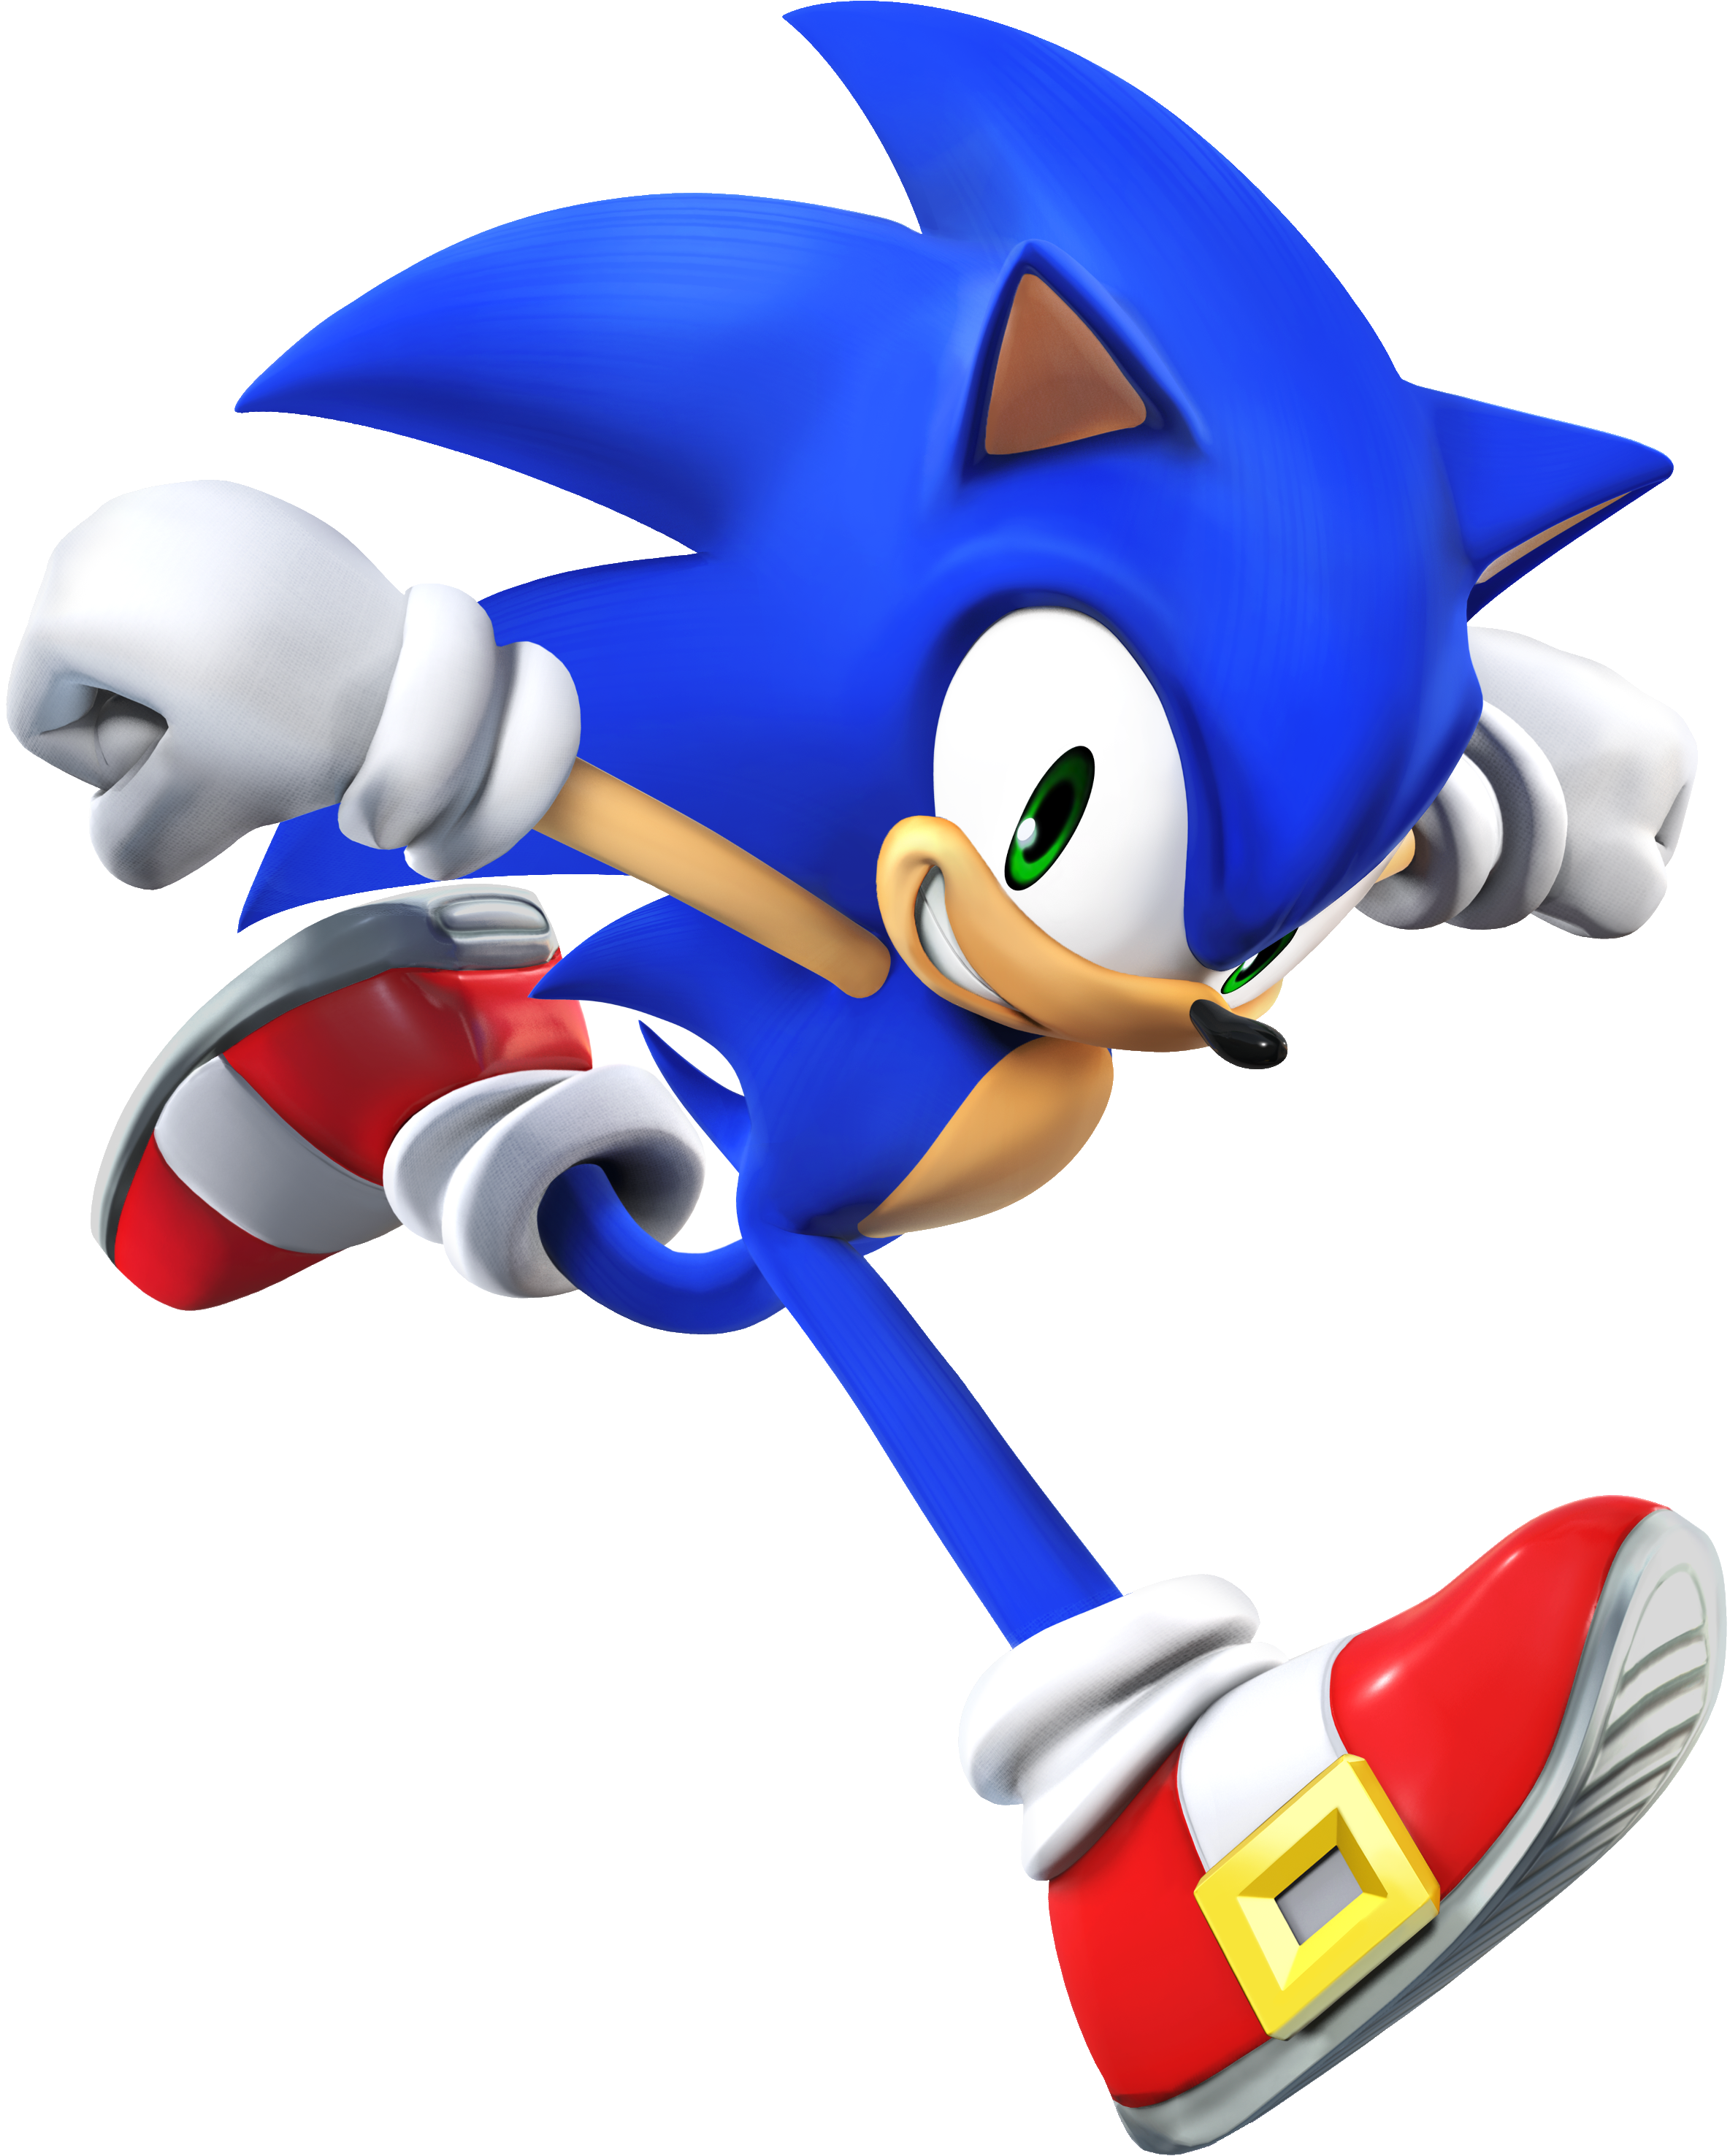 File:Sonic the Hedgehog in Super Smash Bros. for Nintendo 3DS & Wii U.png